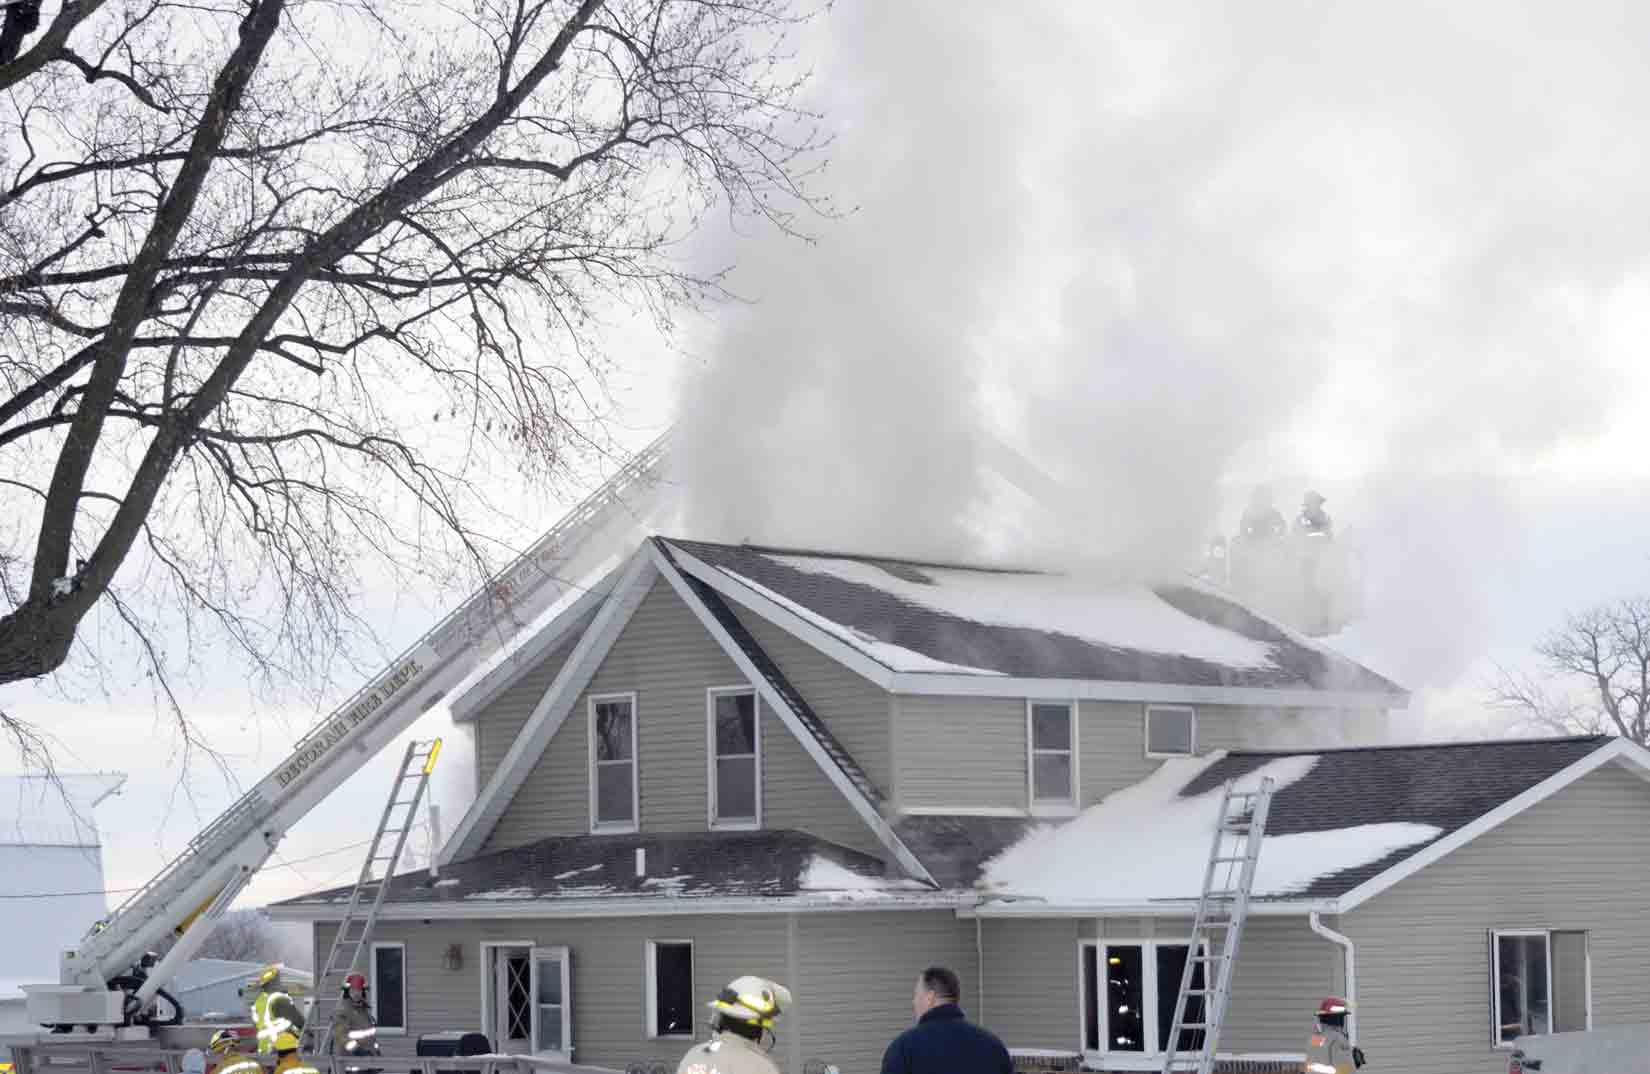 The Decorah Fire Department's aerial truck was one of many area emergency response resources utilized at a house fire on Tuesday, Jan. 5, in rural Winneshiek County. The Calmar Fire Department got the initial call at approximately 2:30 p.m. that day and was soon after joined by the Fort...